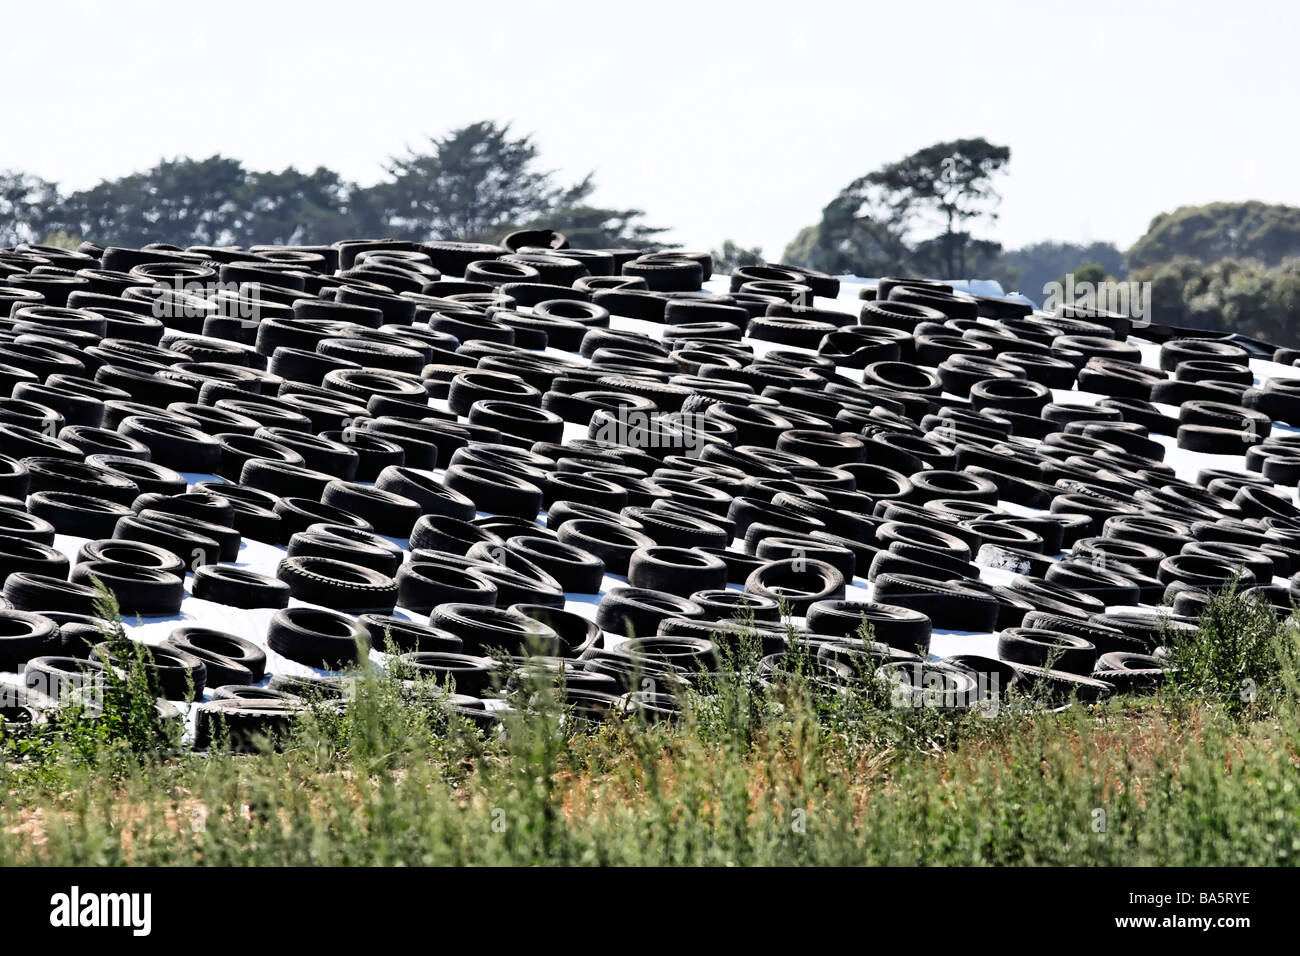 Old Rubber Car and Truck Tyres holding down Plastic Sheeting on Farmers Silo Victoria Australia - Stock Image